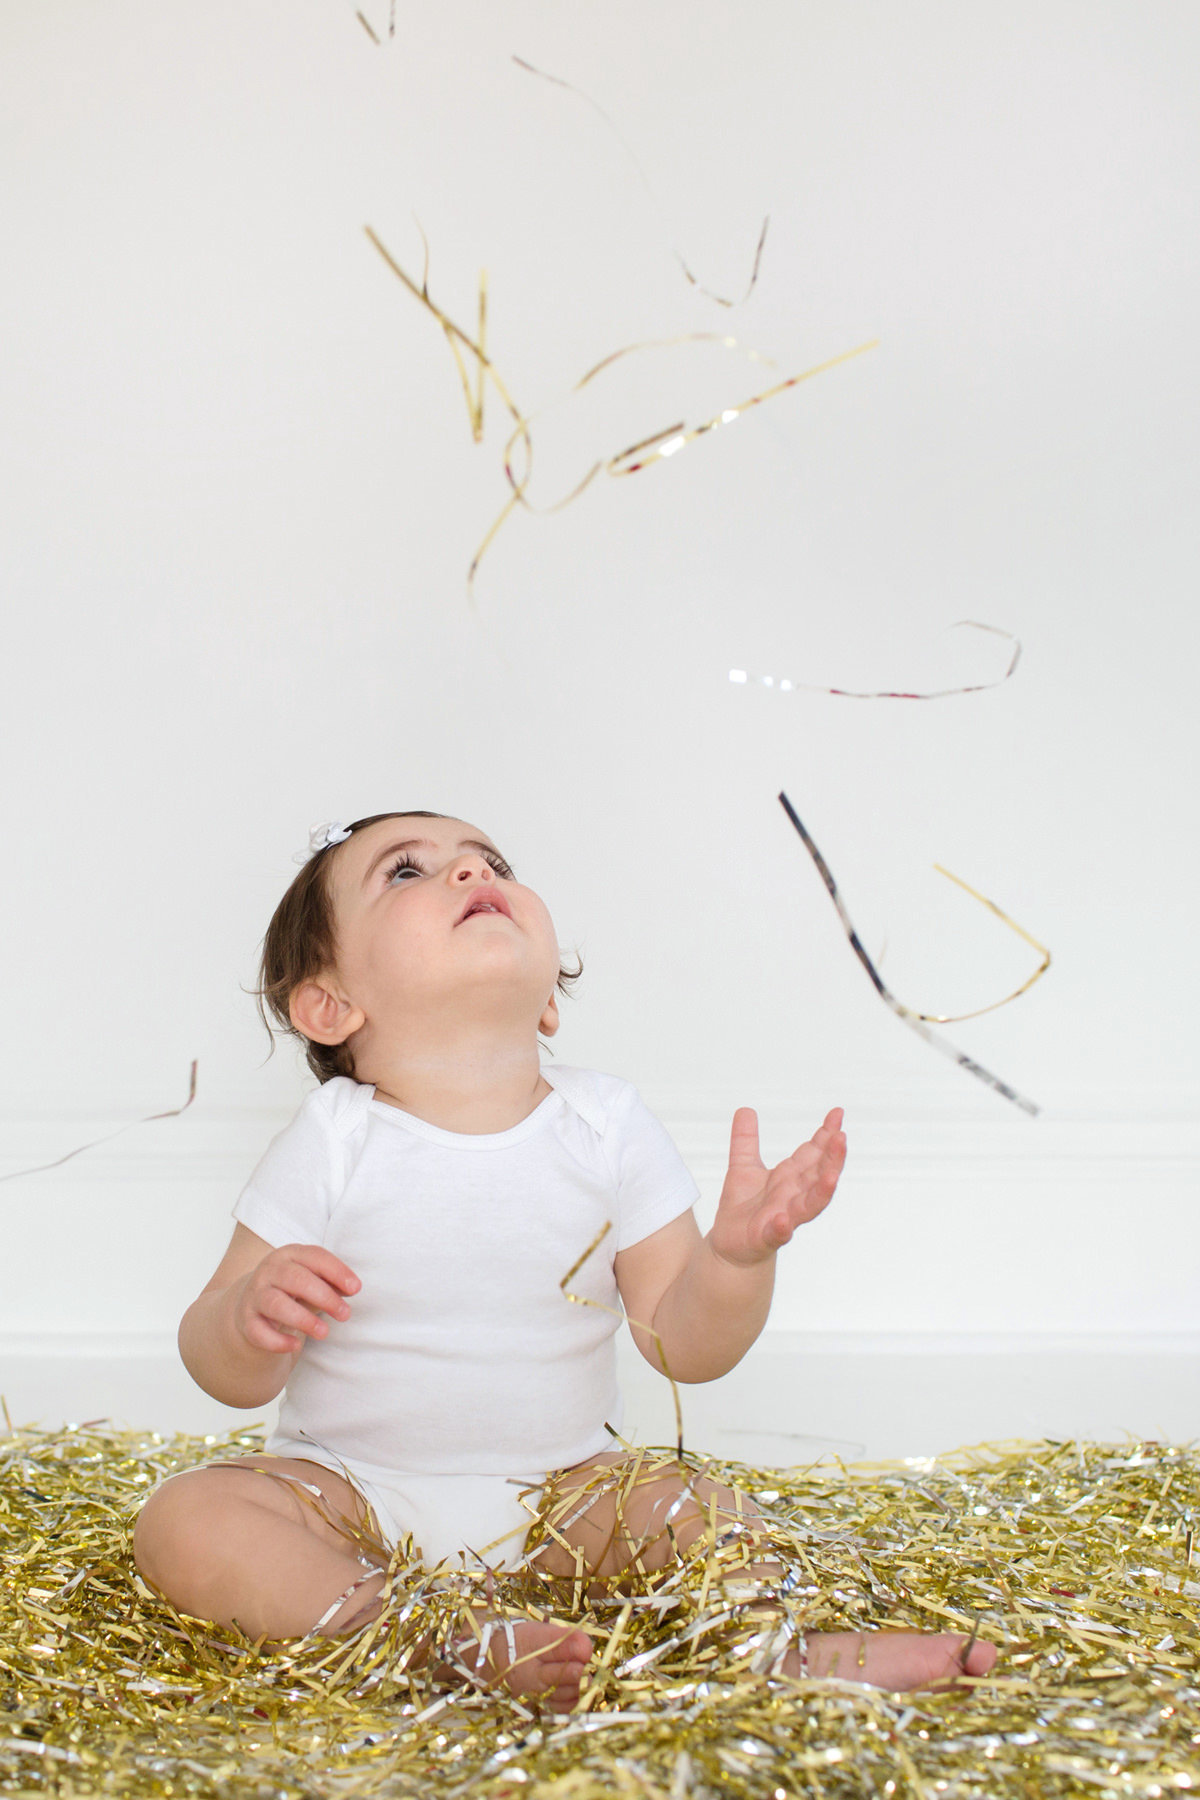 St-Louis-Studio-Child-Photographer-Cake-Smash-1-year-old-Sheth_44